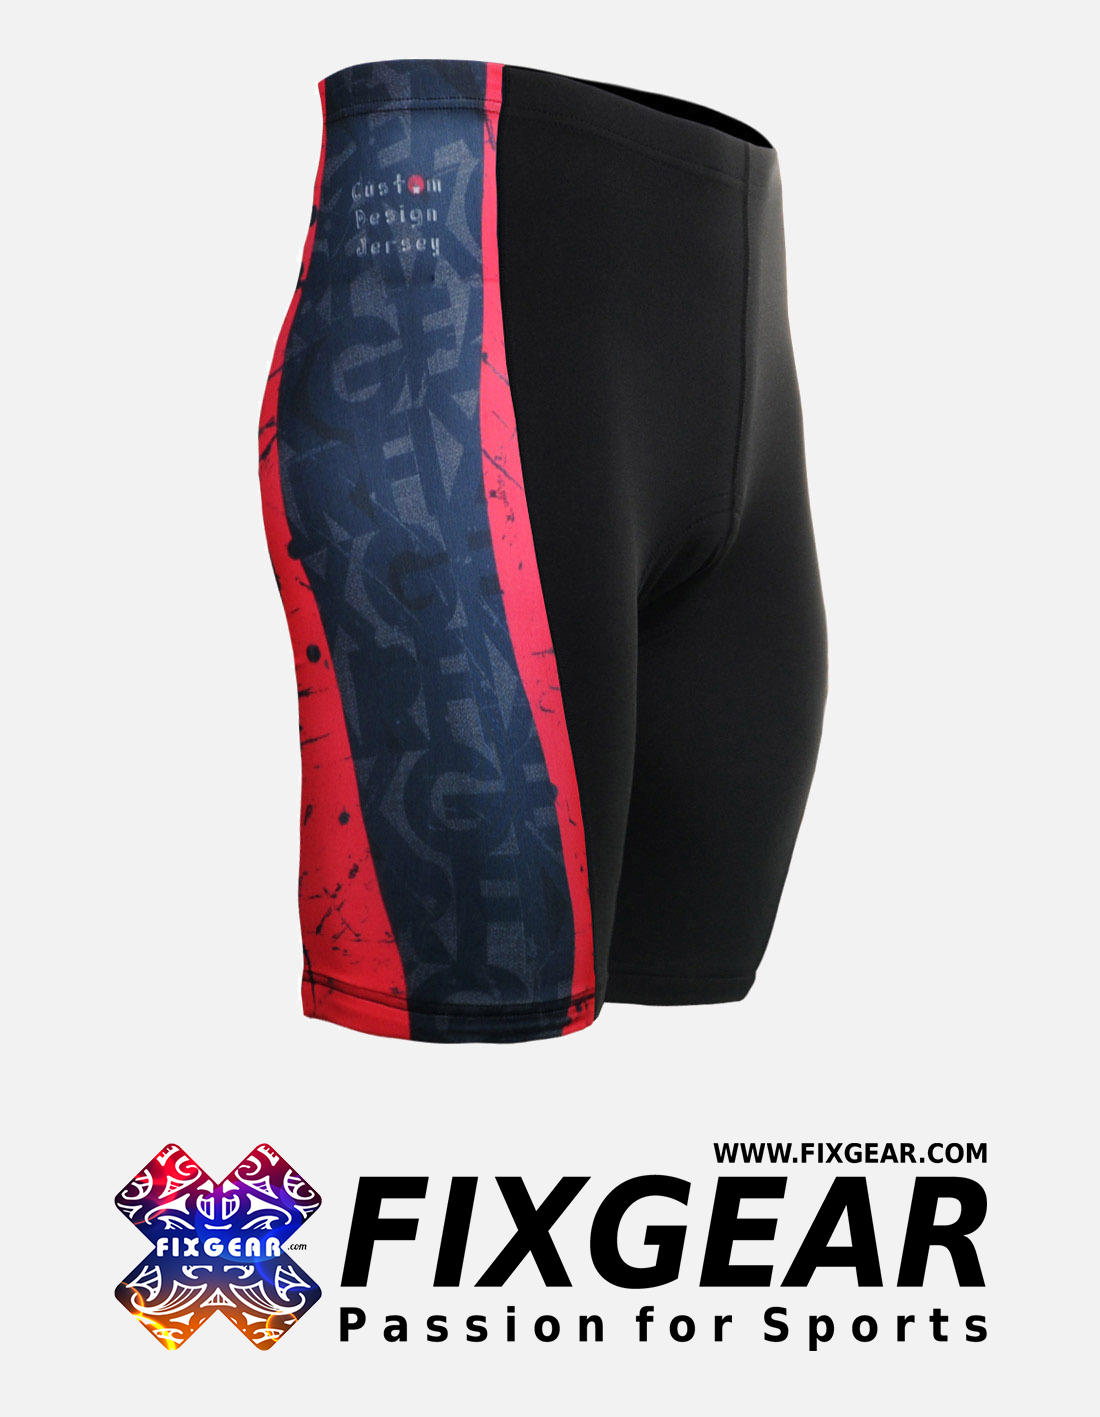 FIXGEAR ST-g6 Men's Cycling Cycling Padded Shorts